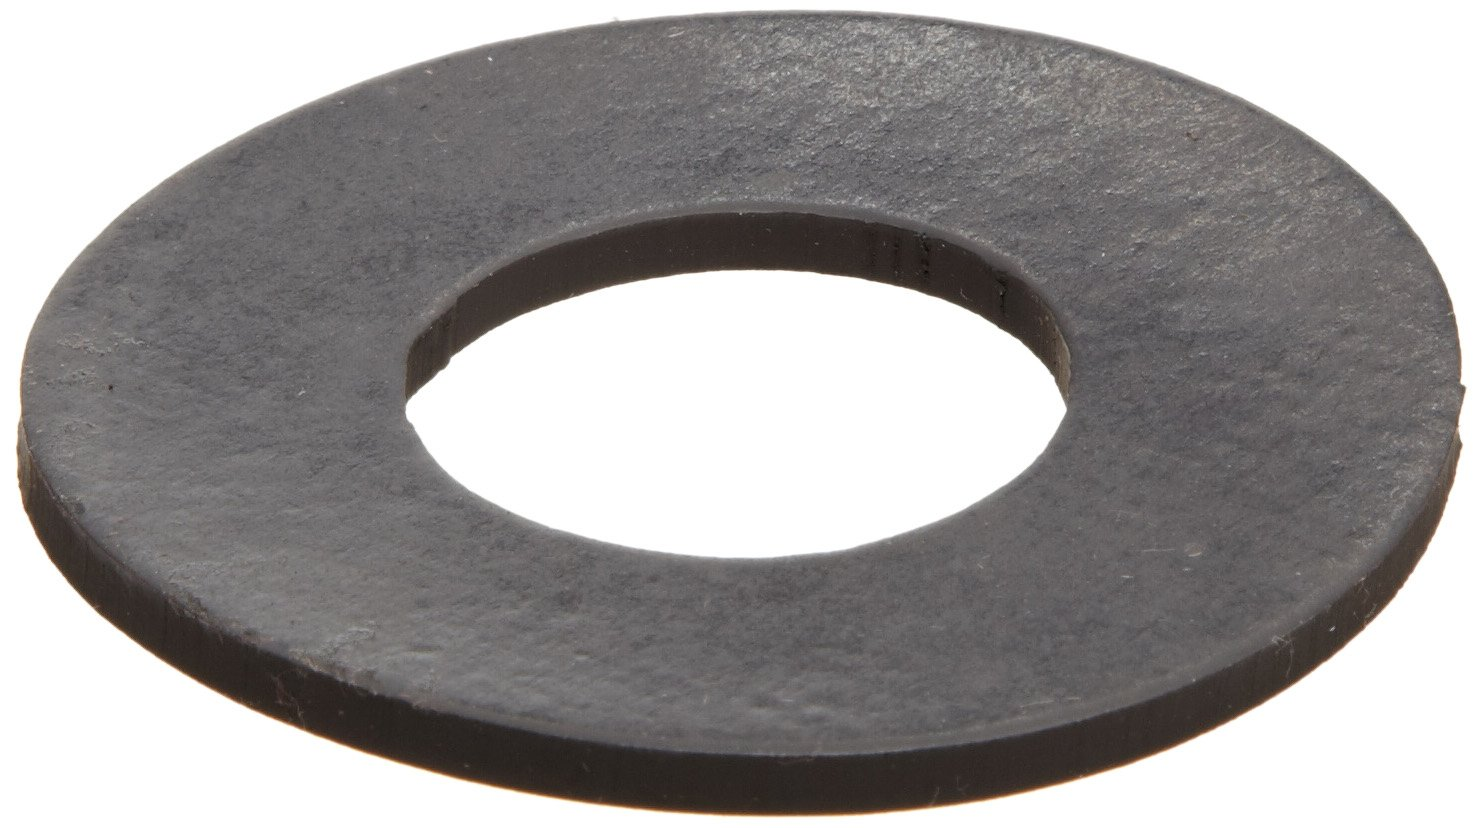 Viton Fluoroelastomer Flange Gasket, Ring, Black, Fits Class 150 Flange, 1/8'' Thick, 1-1/2'' Pipe Size, 1-29/32'' ID, 3-3/8'' OD (Pack of 1) by Small Parts